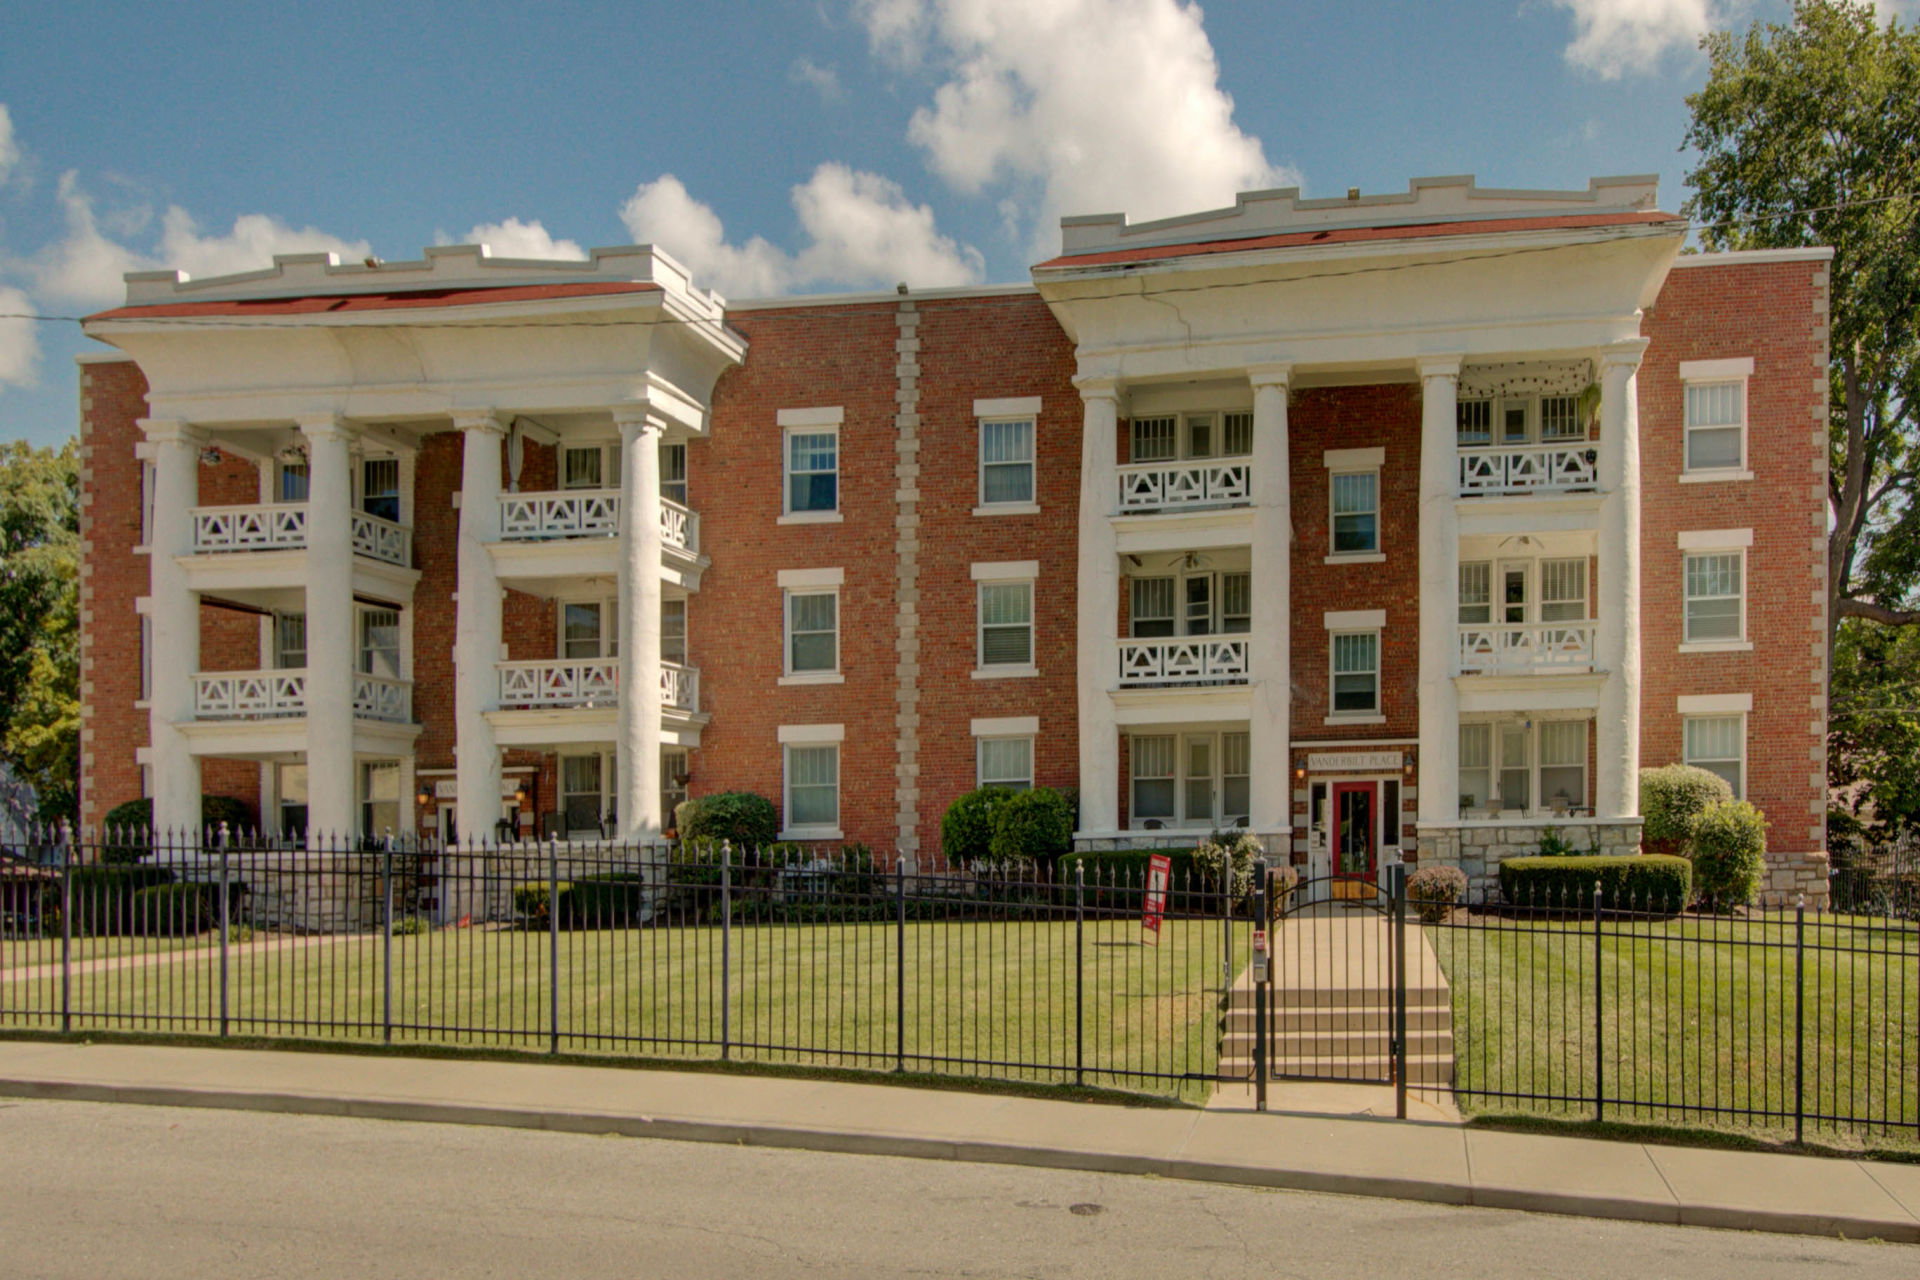 JUST LISTED! Broker Open Tues! Fabulous & Historic Vanderbilt Place Condo in Heart of Arts District